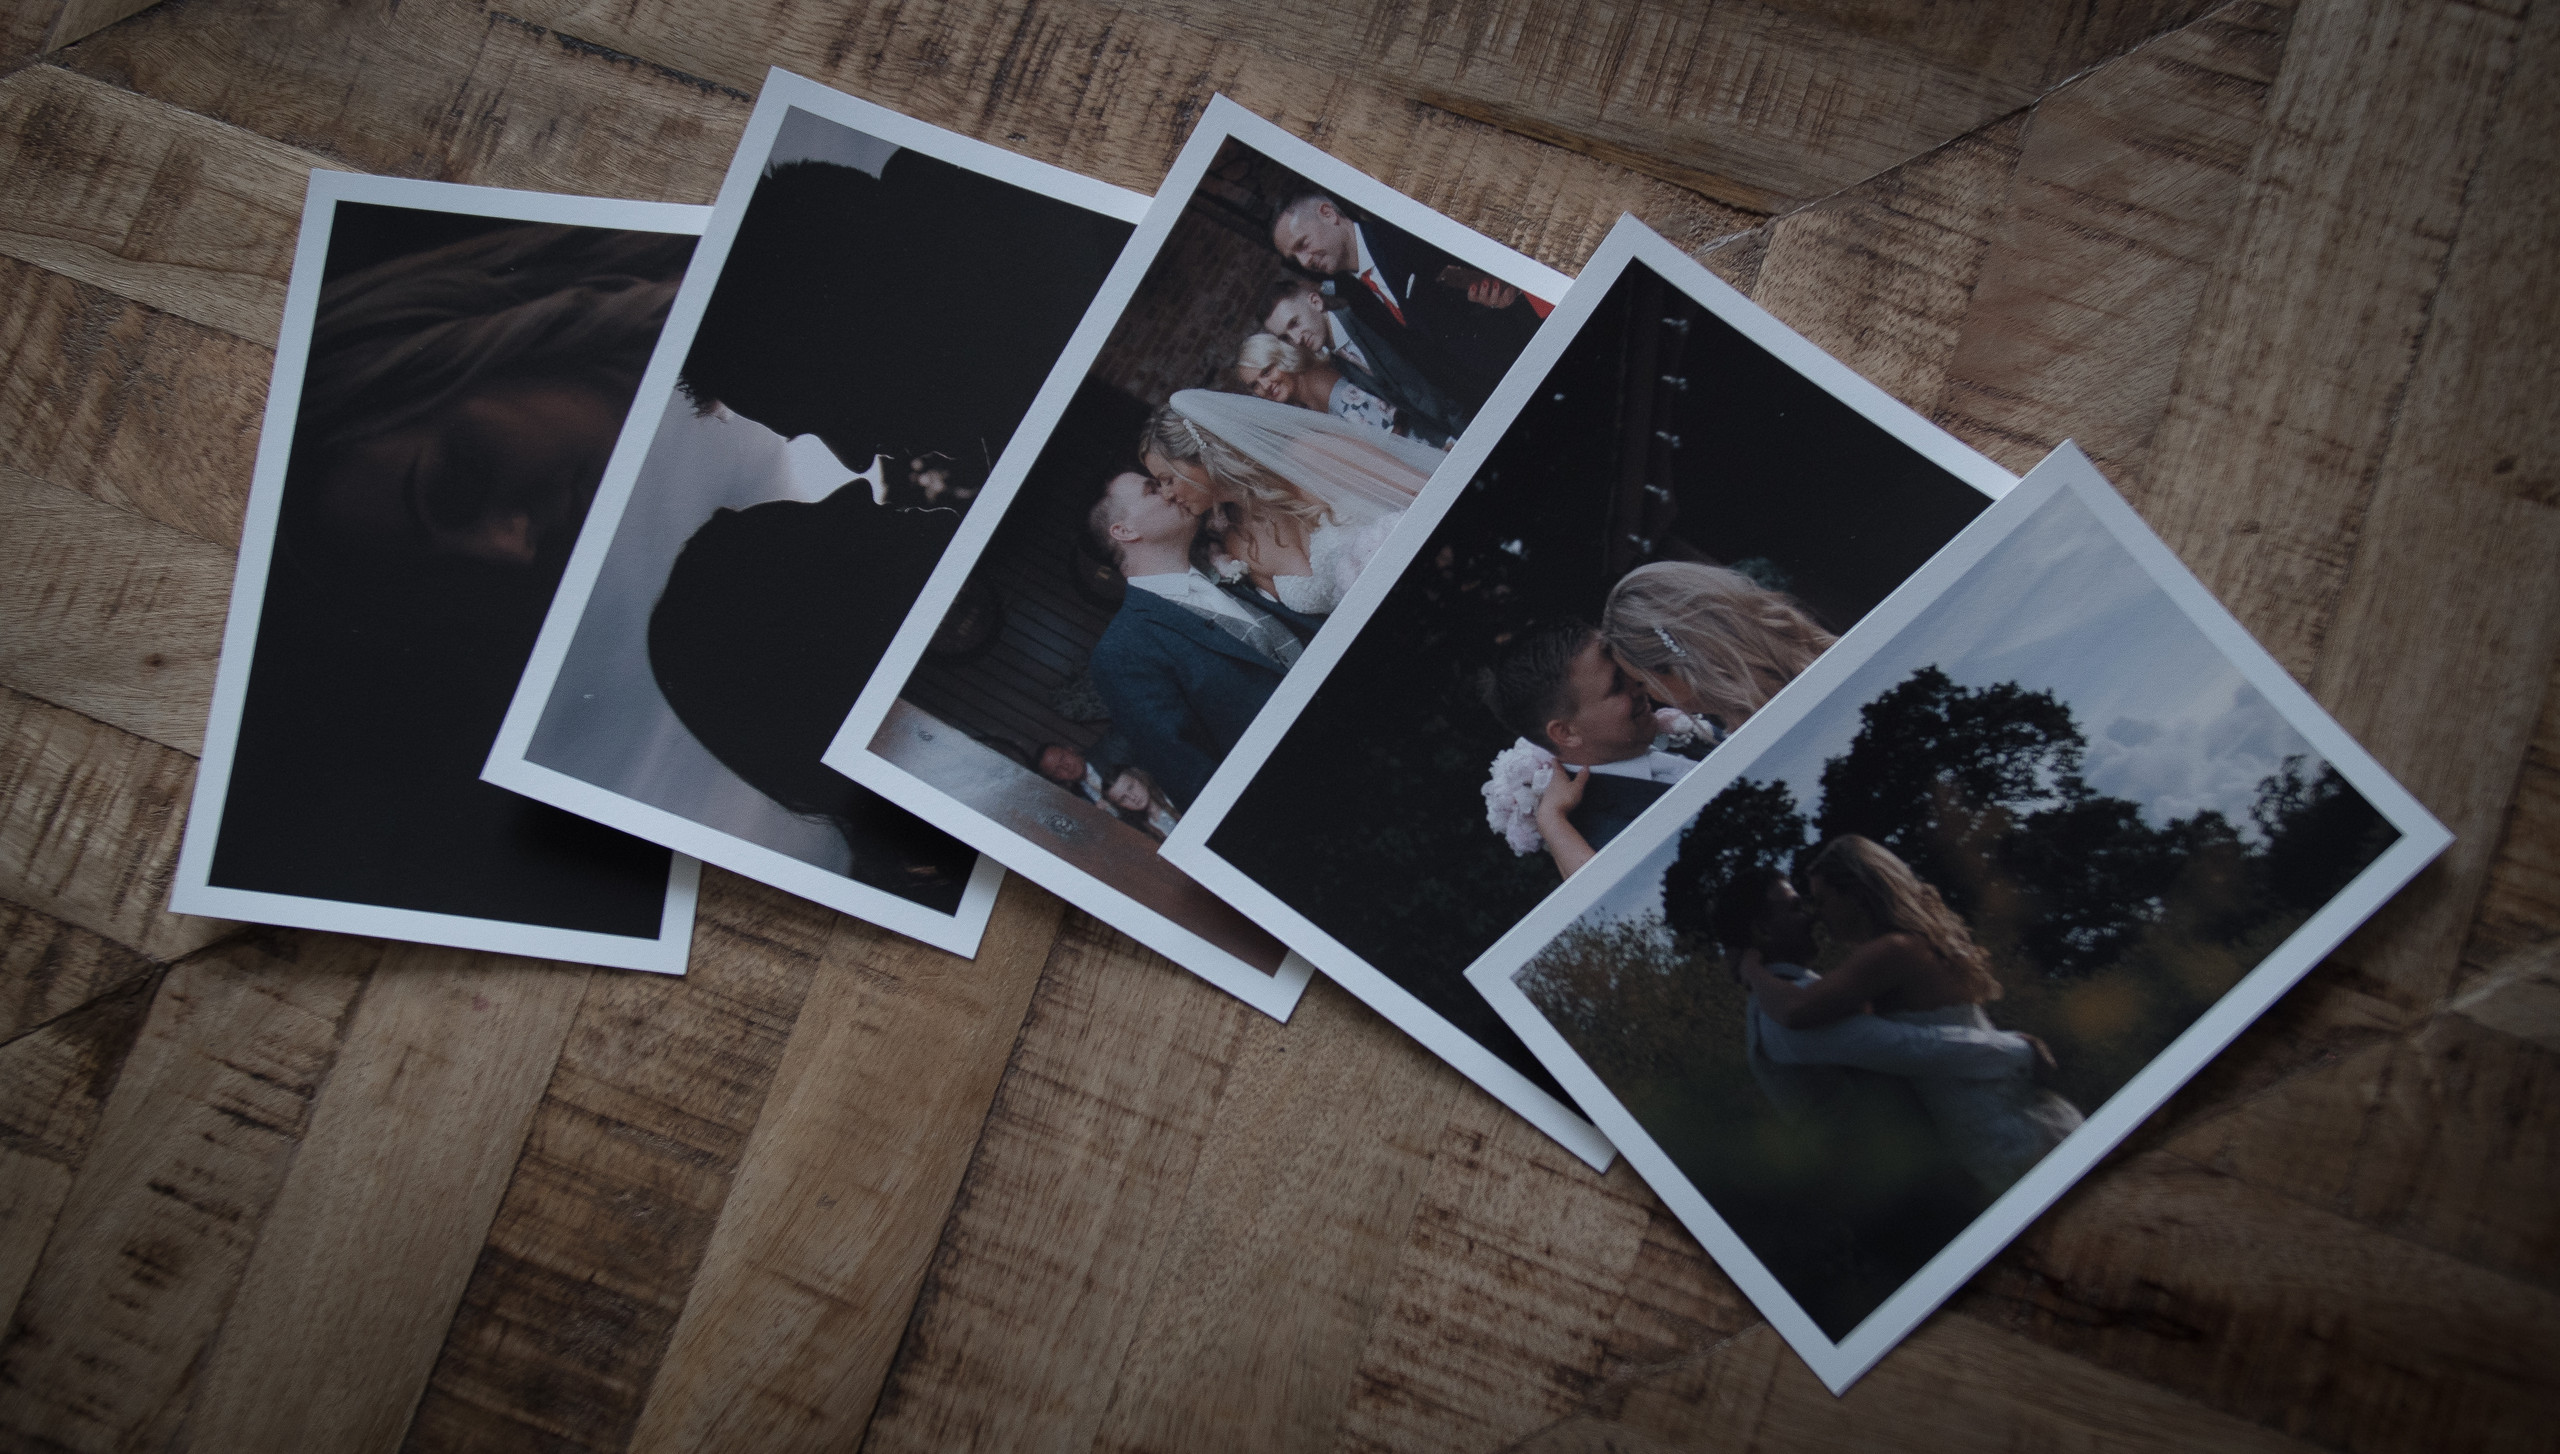 prints of frames from wedding film